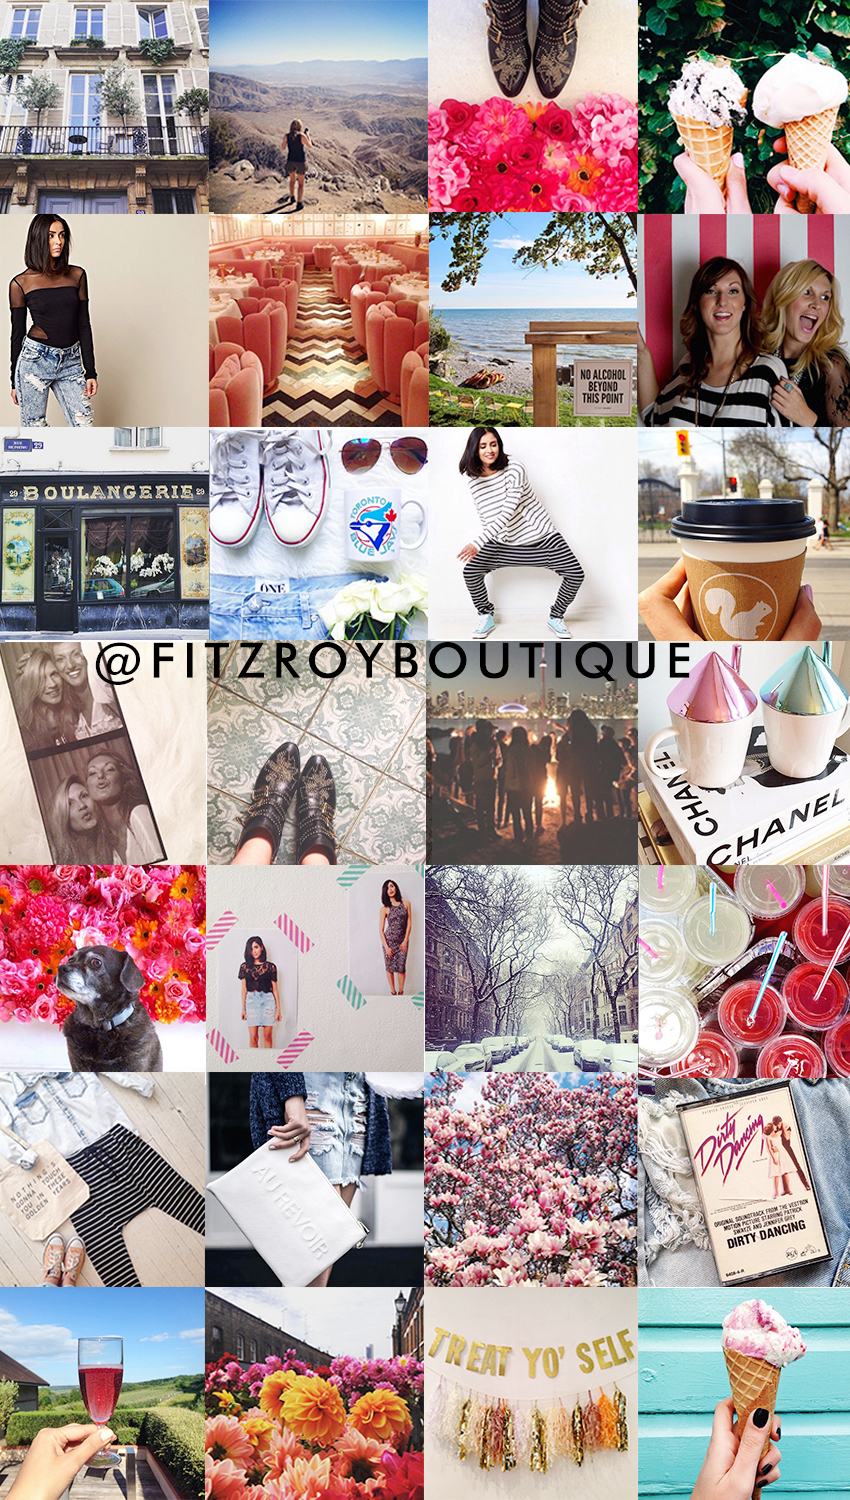 @fitzroyboutique on Instagram